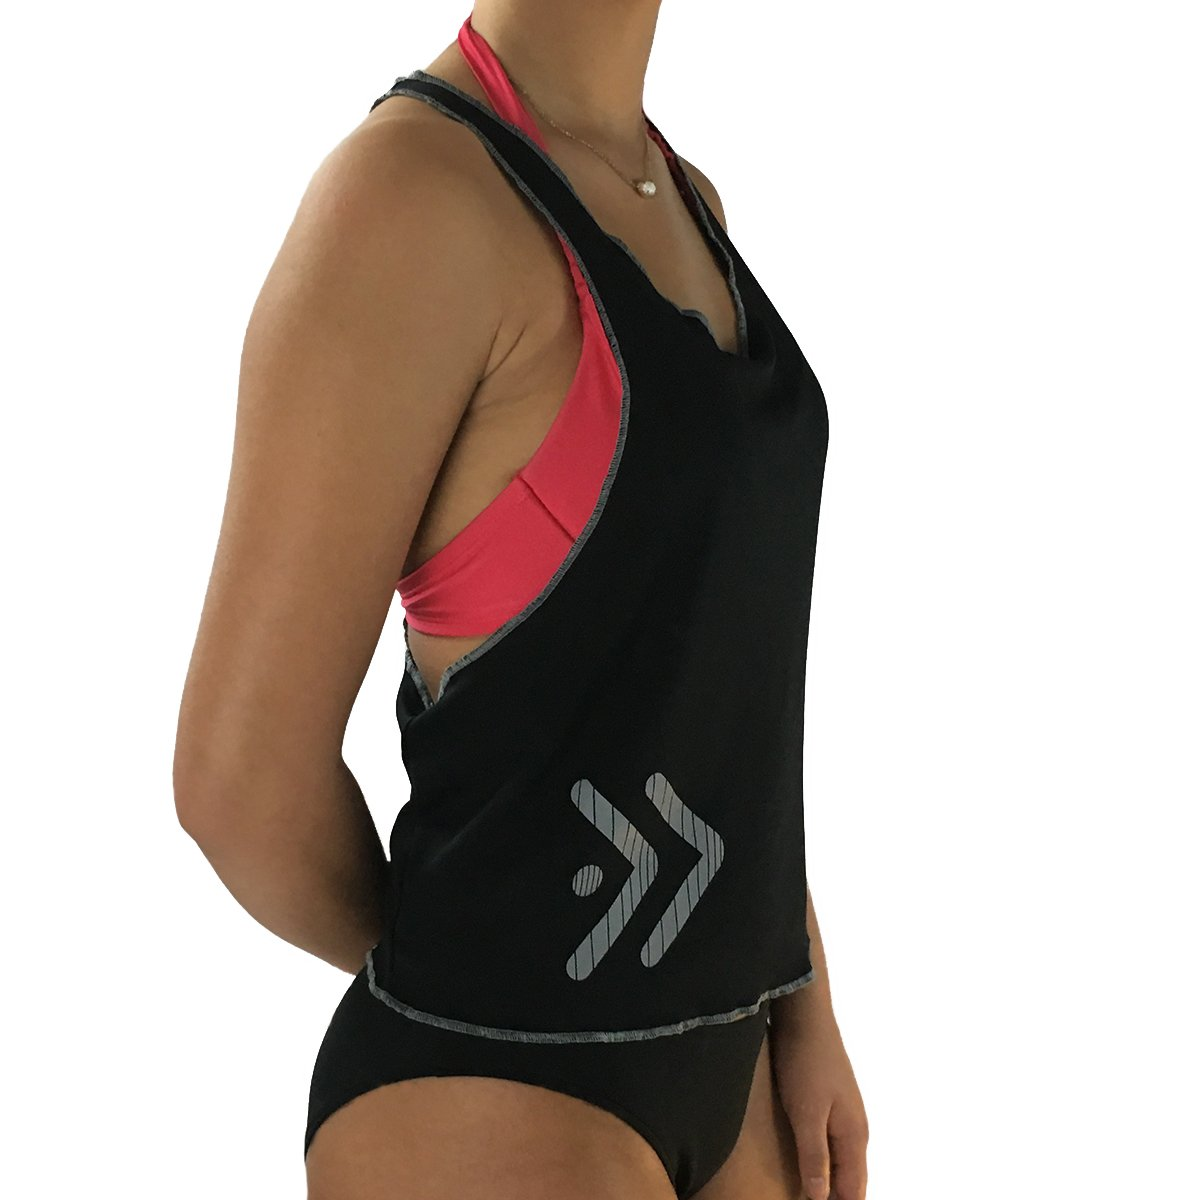 Quick Drying Tank Top for Women & Swimming Suit Cover up